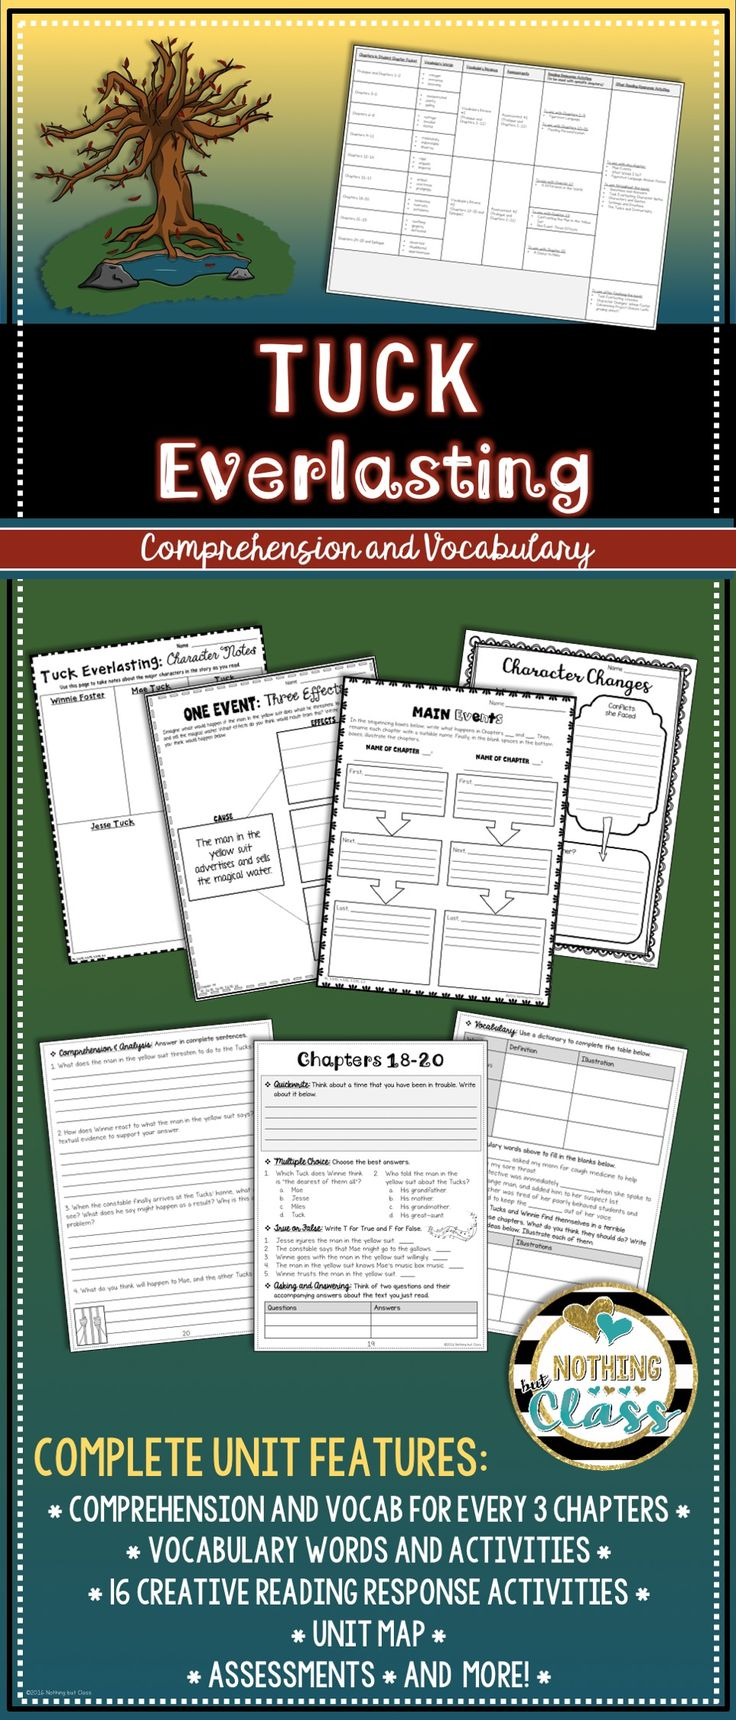 https://www.teacherspayteachers.com/Product/Tuck-Everlasting-Novel-Study-Unit-comprehension-vocabulary-activities-tests-2884569